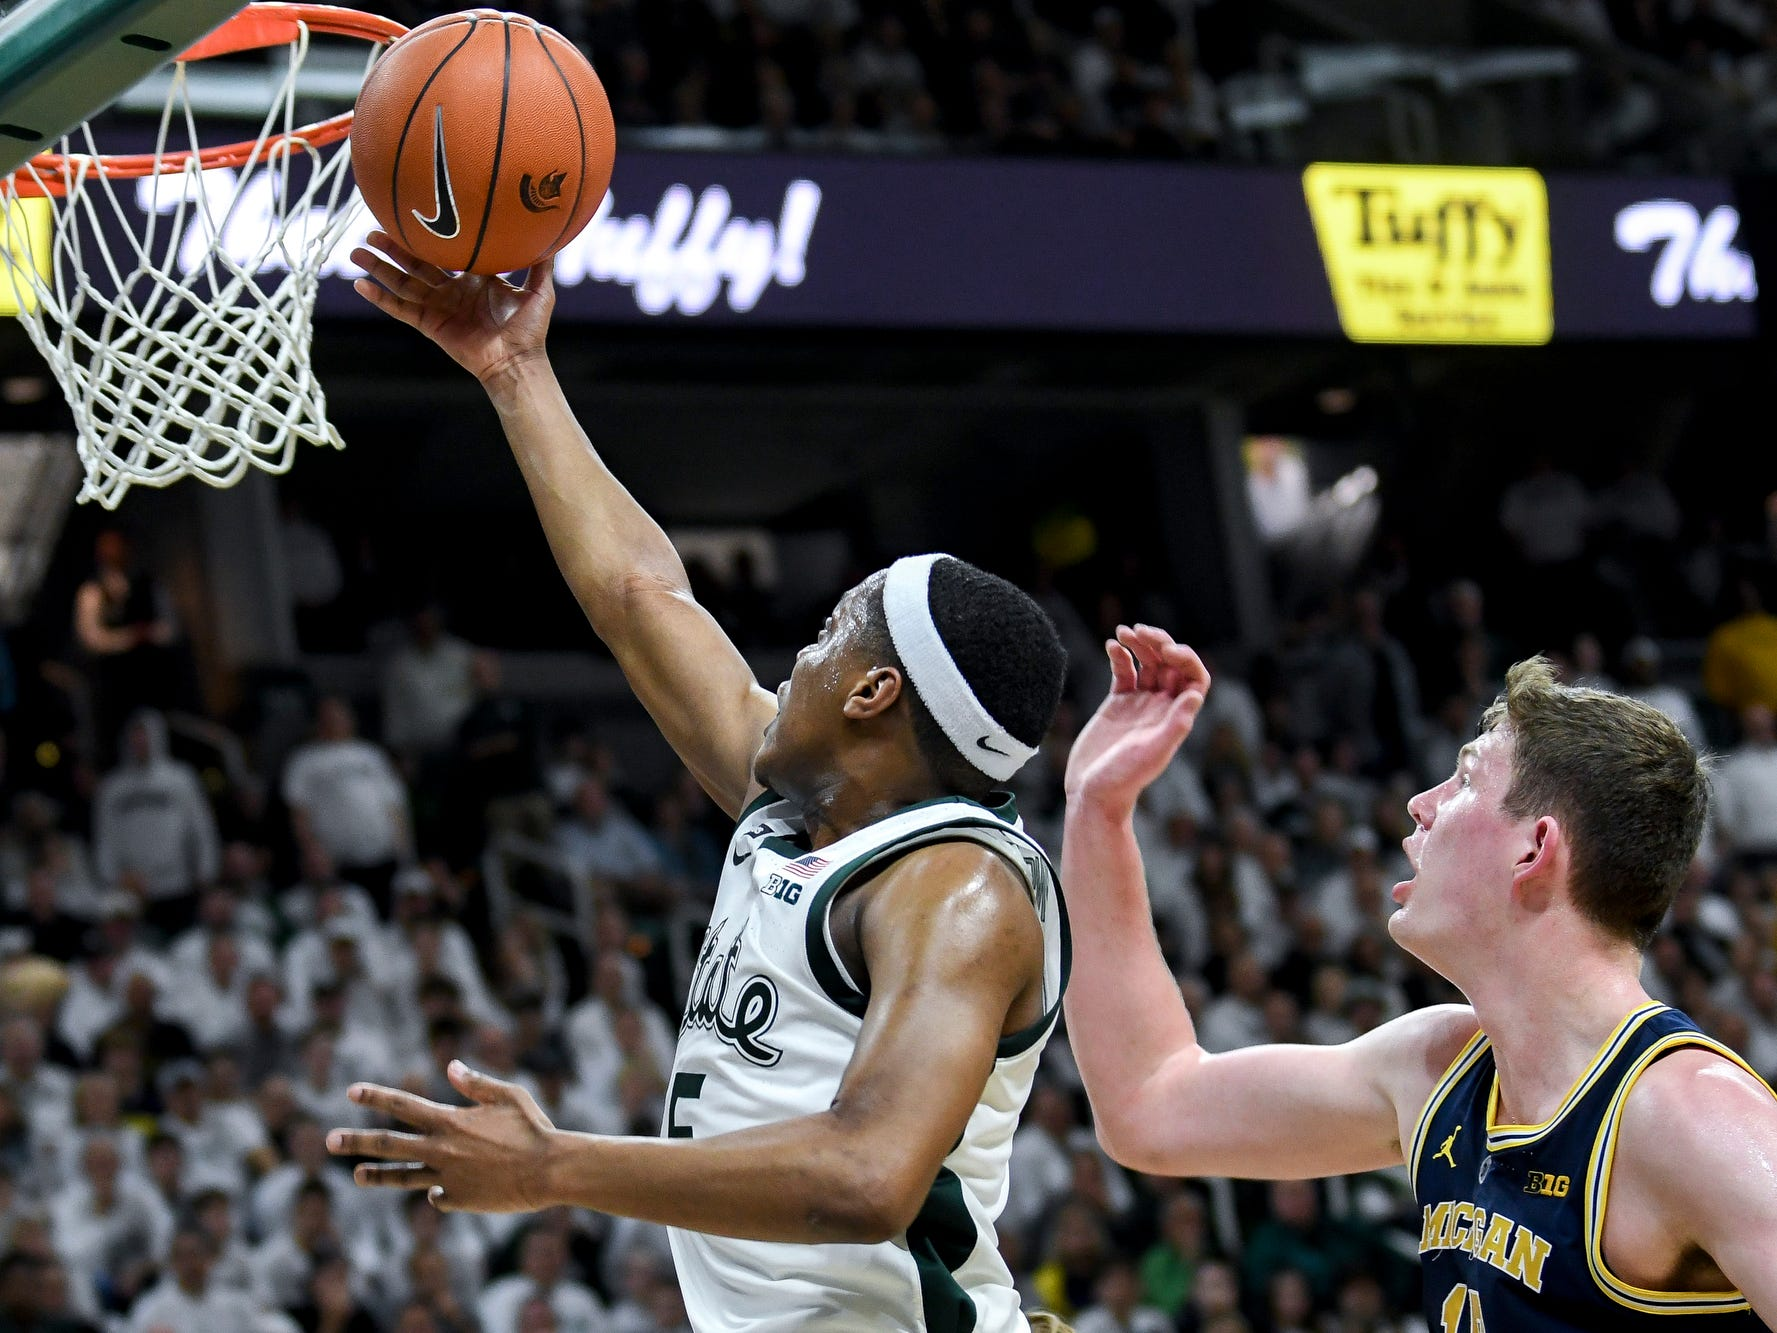 Michigan State's Cassius Winston, left, scores as Michigan's Jon Teske looks on during the second half on Saturday, March 9, 2019, at the Breslin Center in East Lansing.